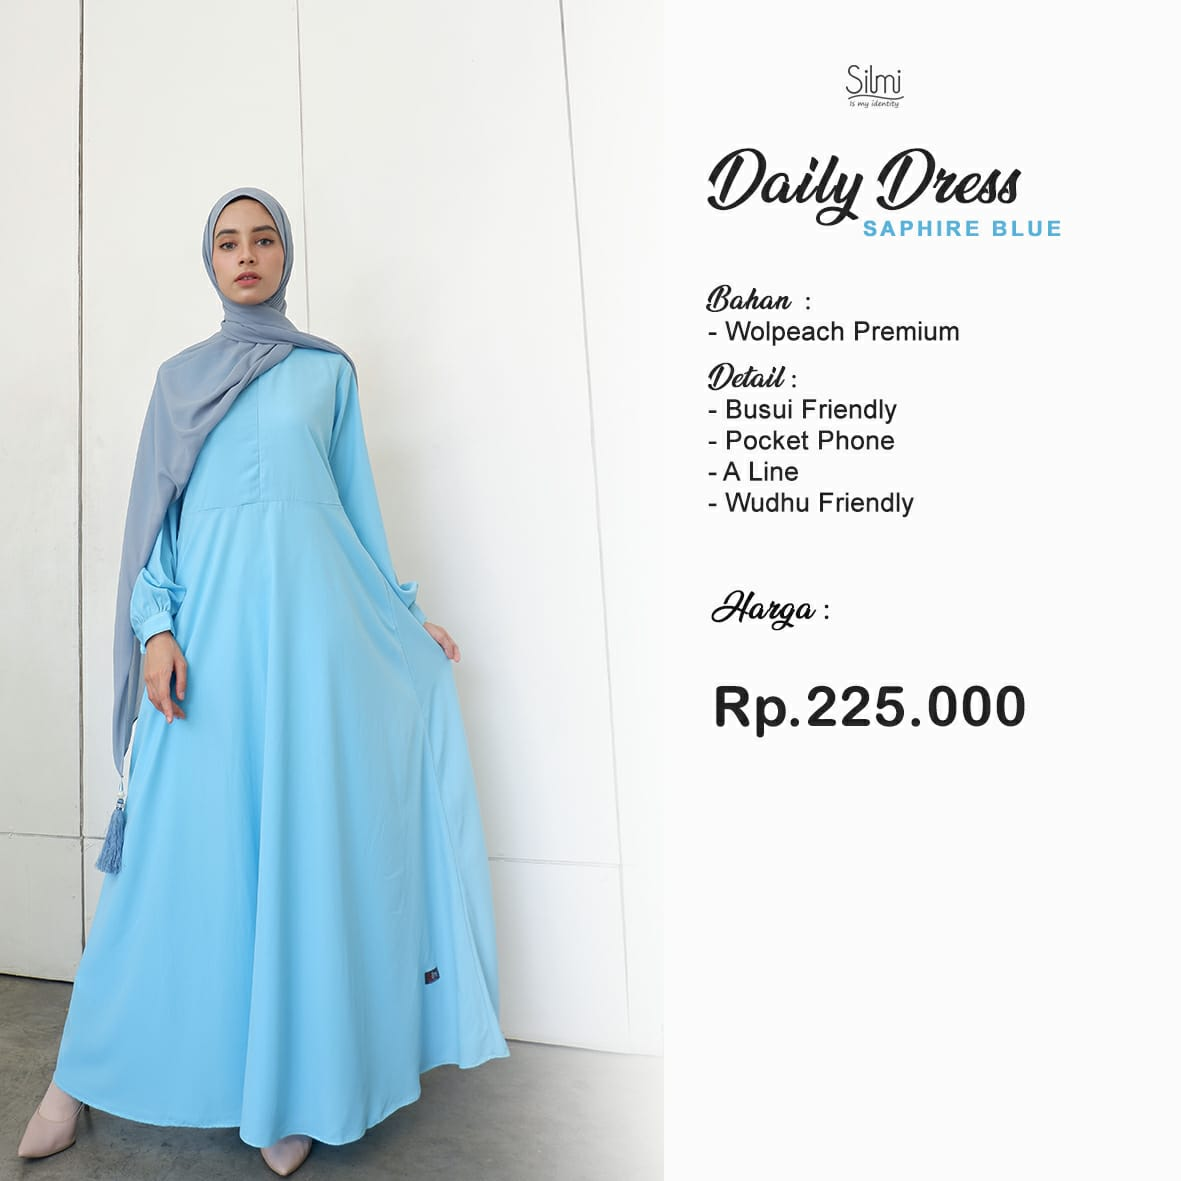 Silmi Daily Dress Wolpeach Saphire Blue